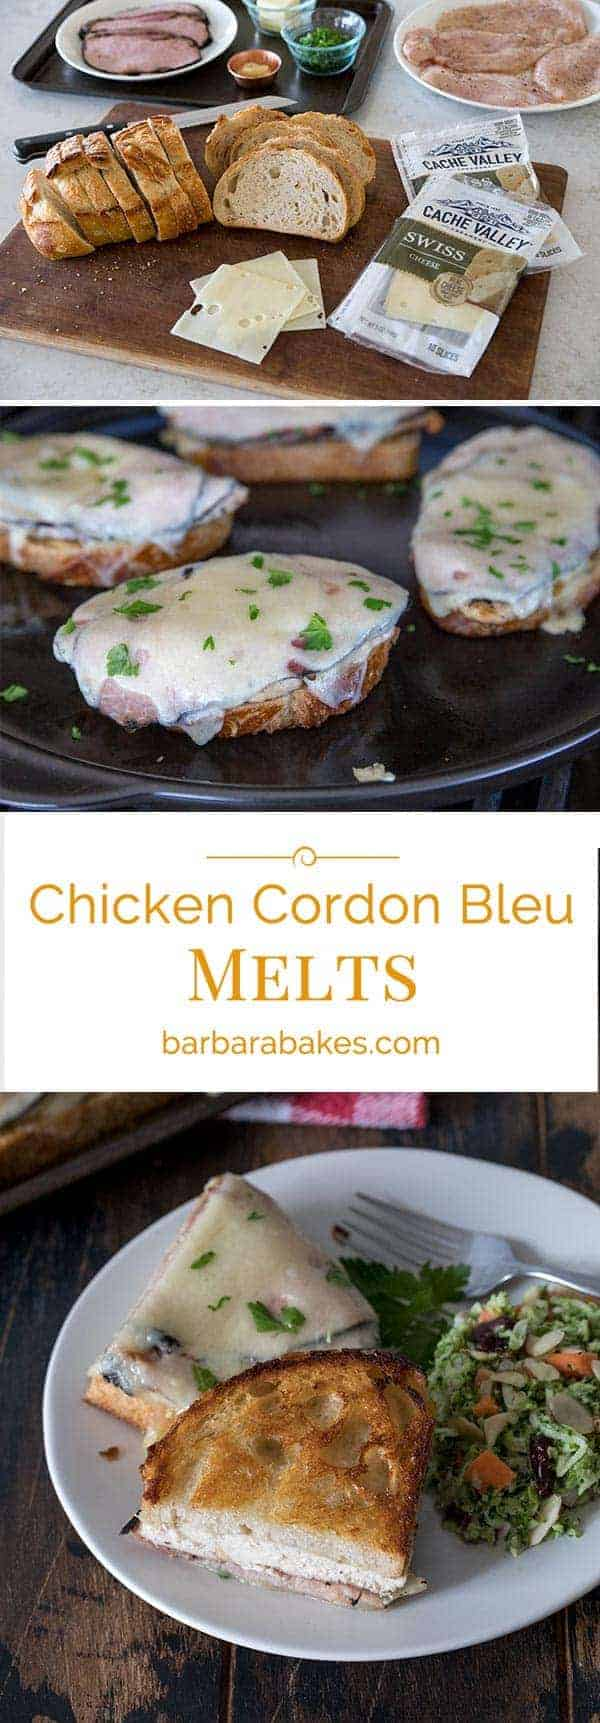 These Chicken Cordon Bleu Melts are a mash up of Chicken Cordon Bleu and a Sandwich Melt. Thin cutlets of grilled chicken topped with Black Forest Ham and Swiss Cheese Slices grilled on sour dough bread until the cheese is melted and the bread is toasted and golden brown.